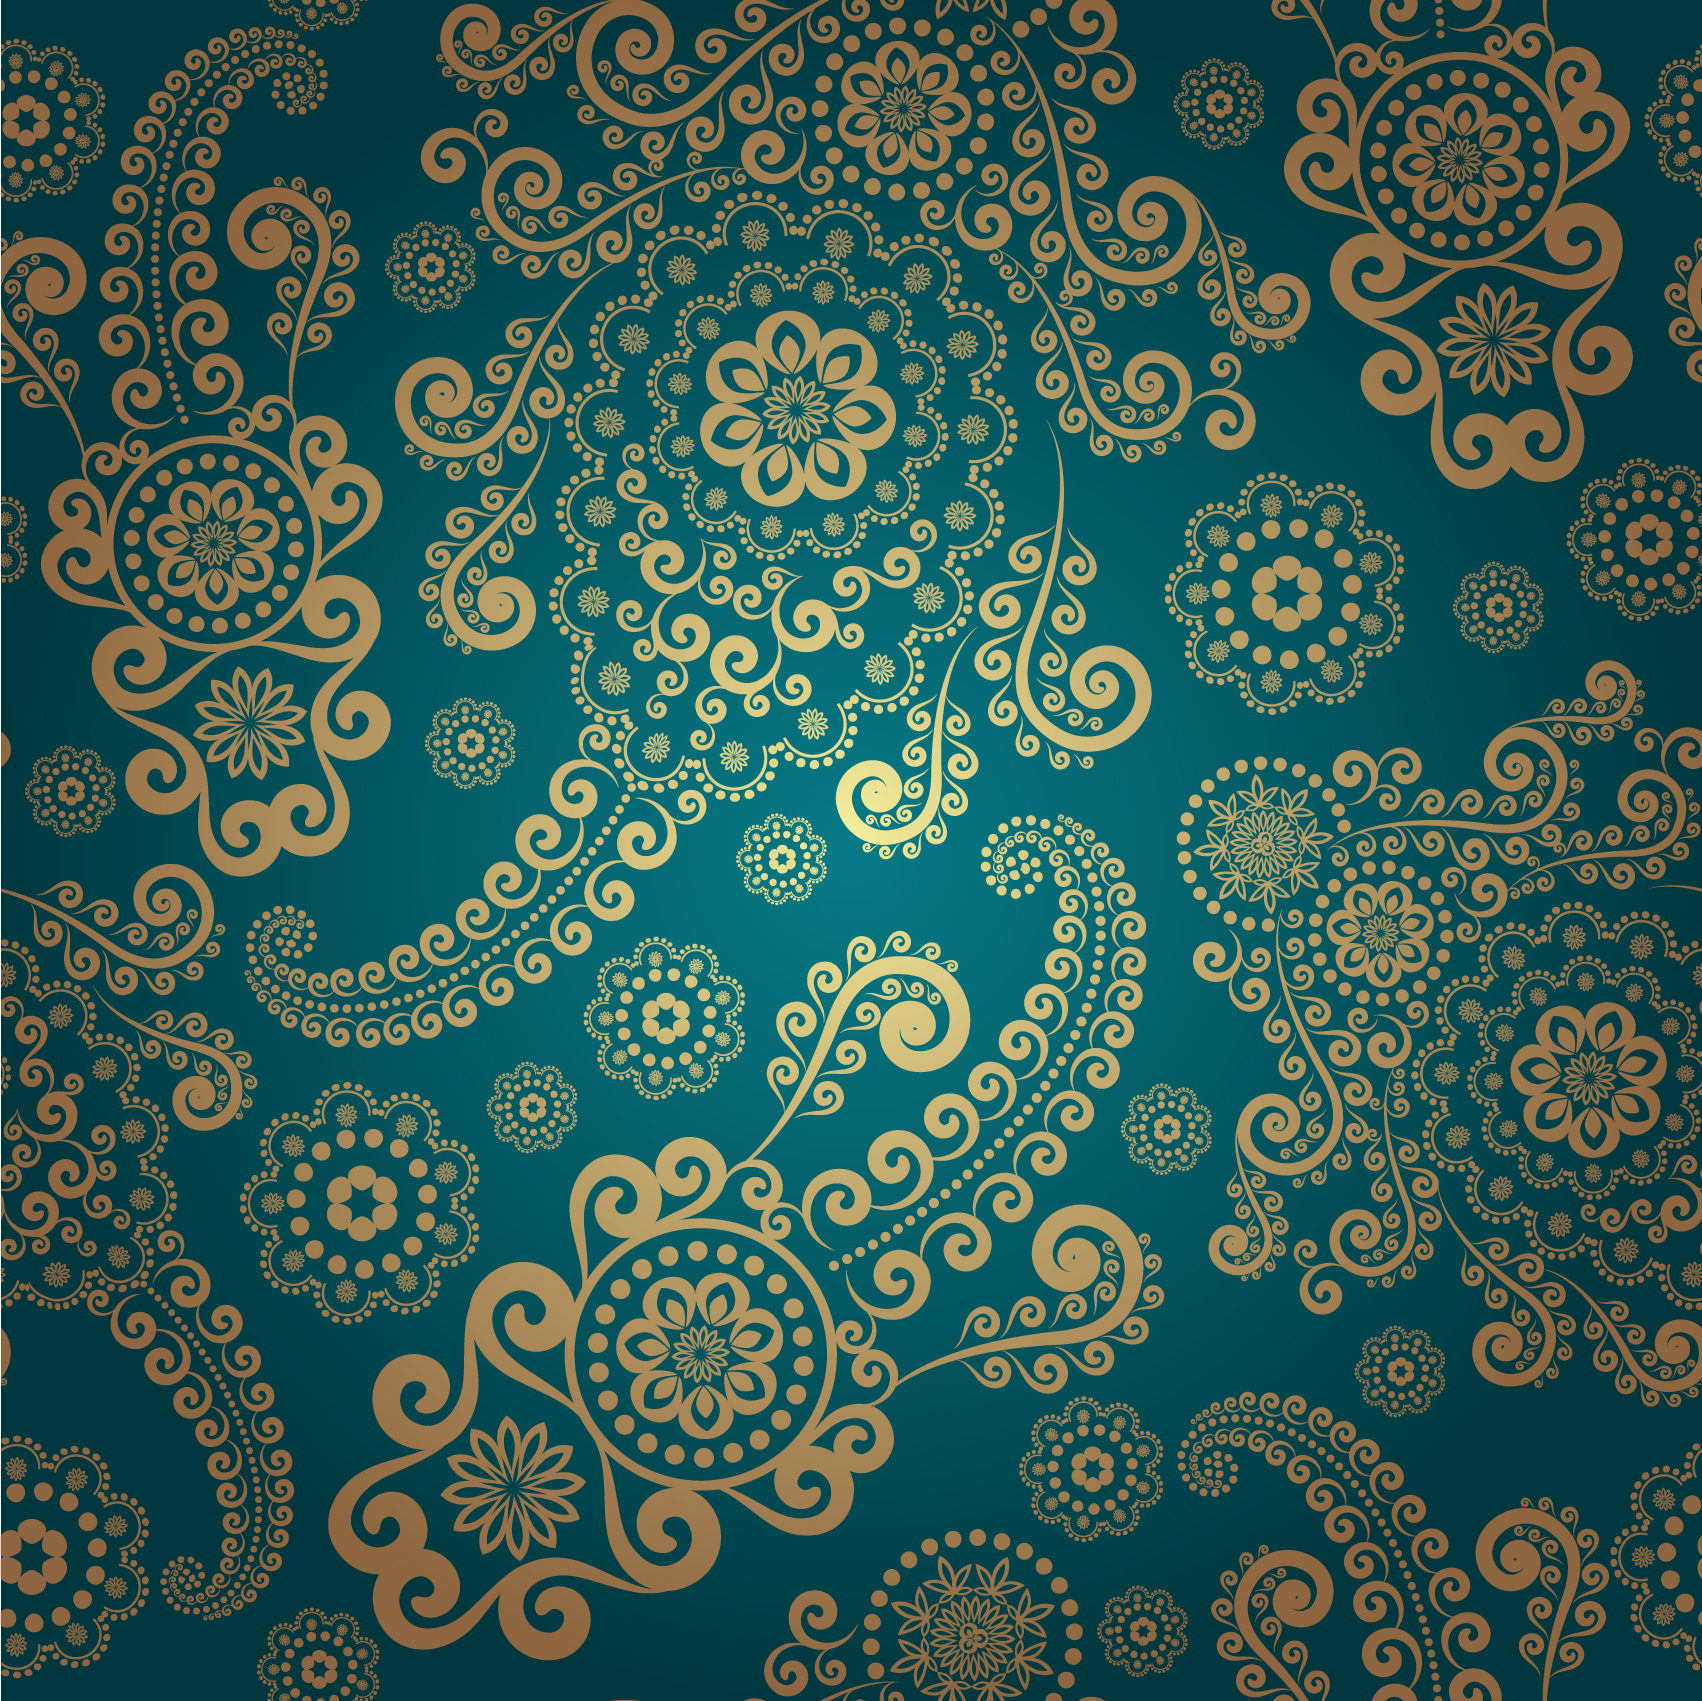 18 Pattern Free Vector Downloads Images